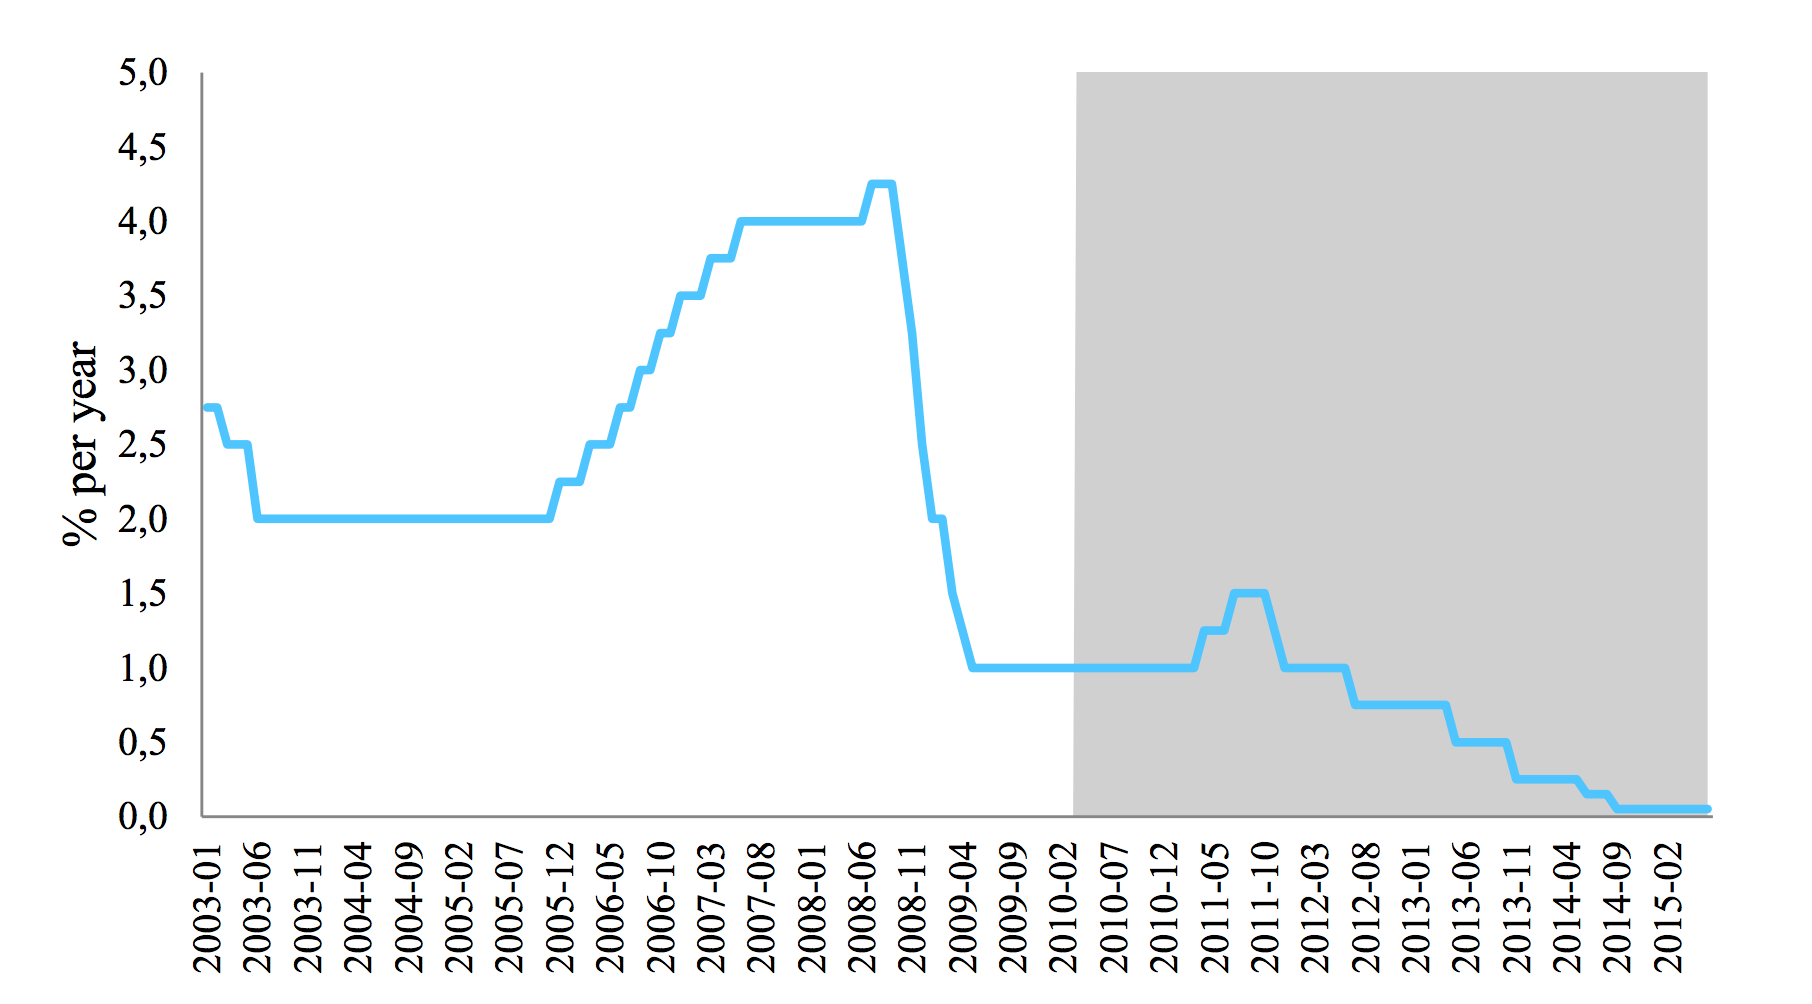 ECB's main refinancing rate